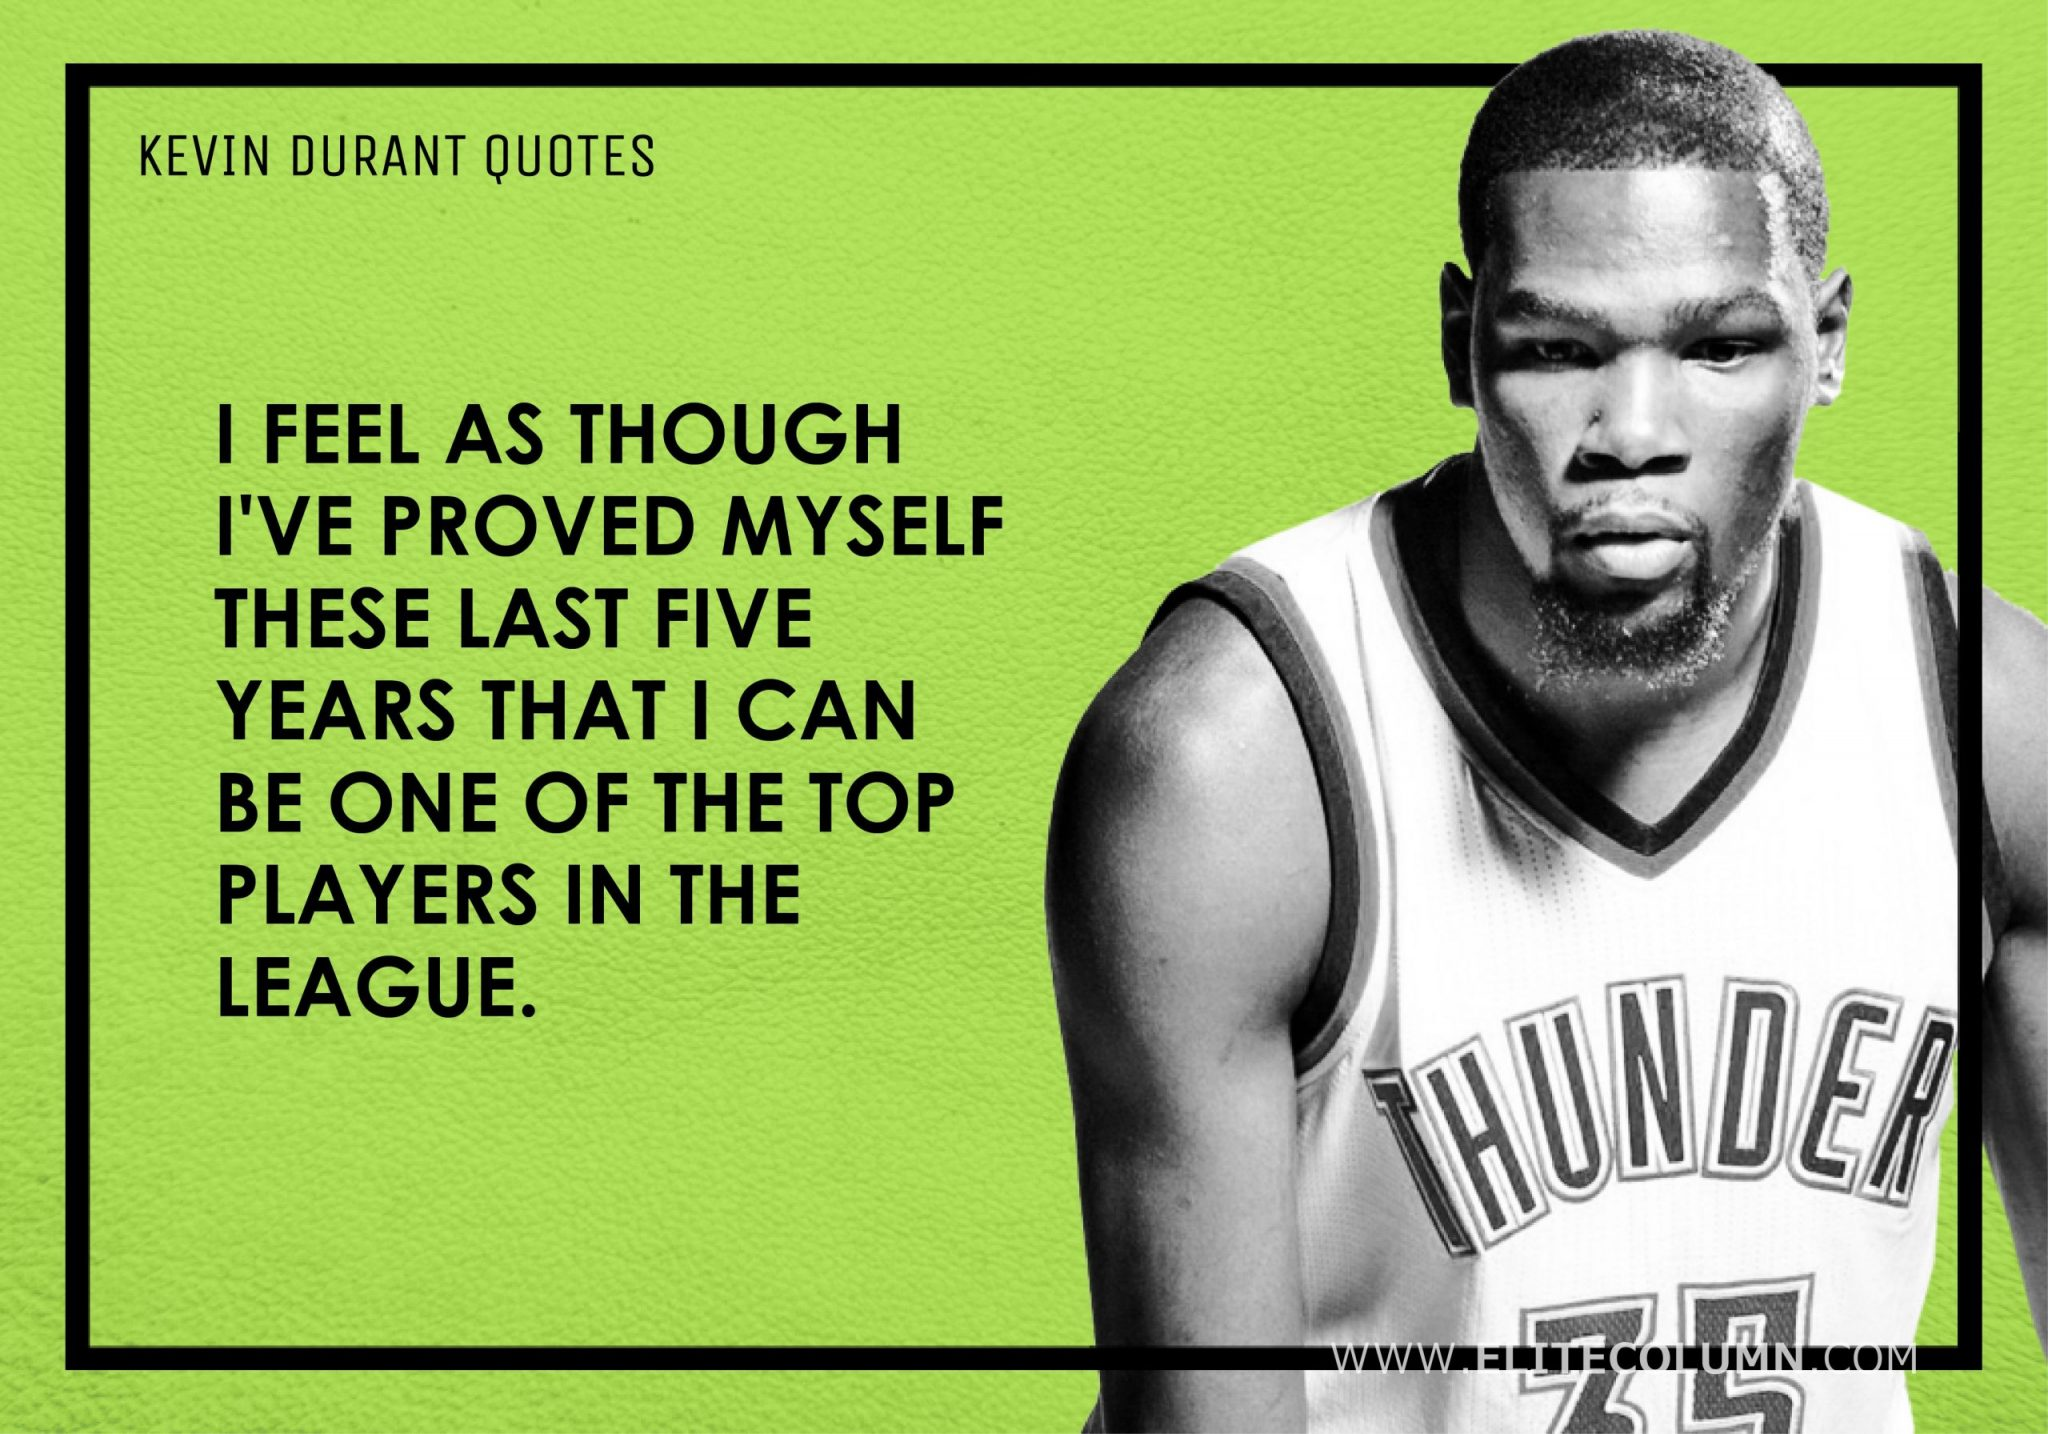 Kevin Durant Quotes (5)